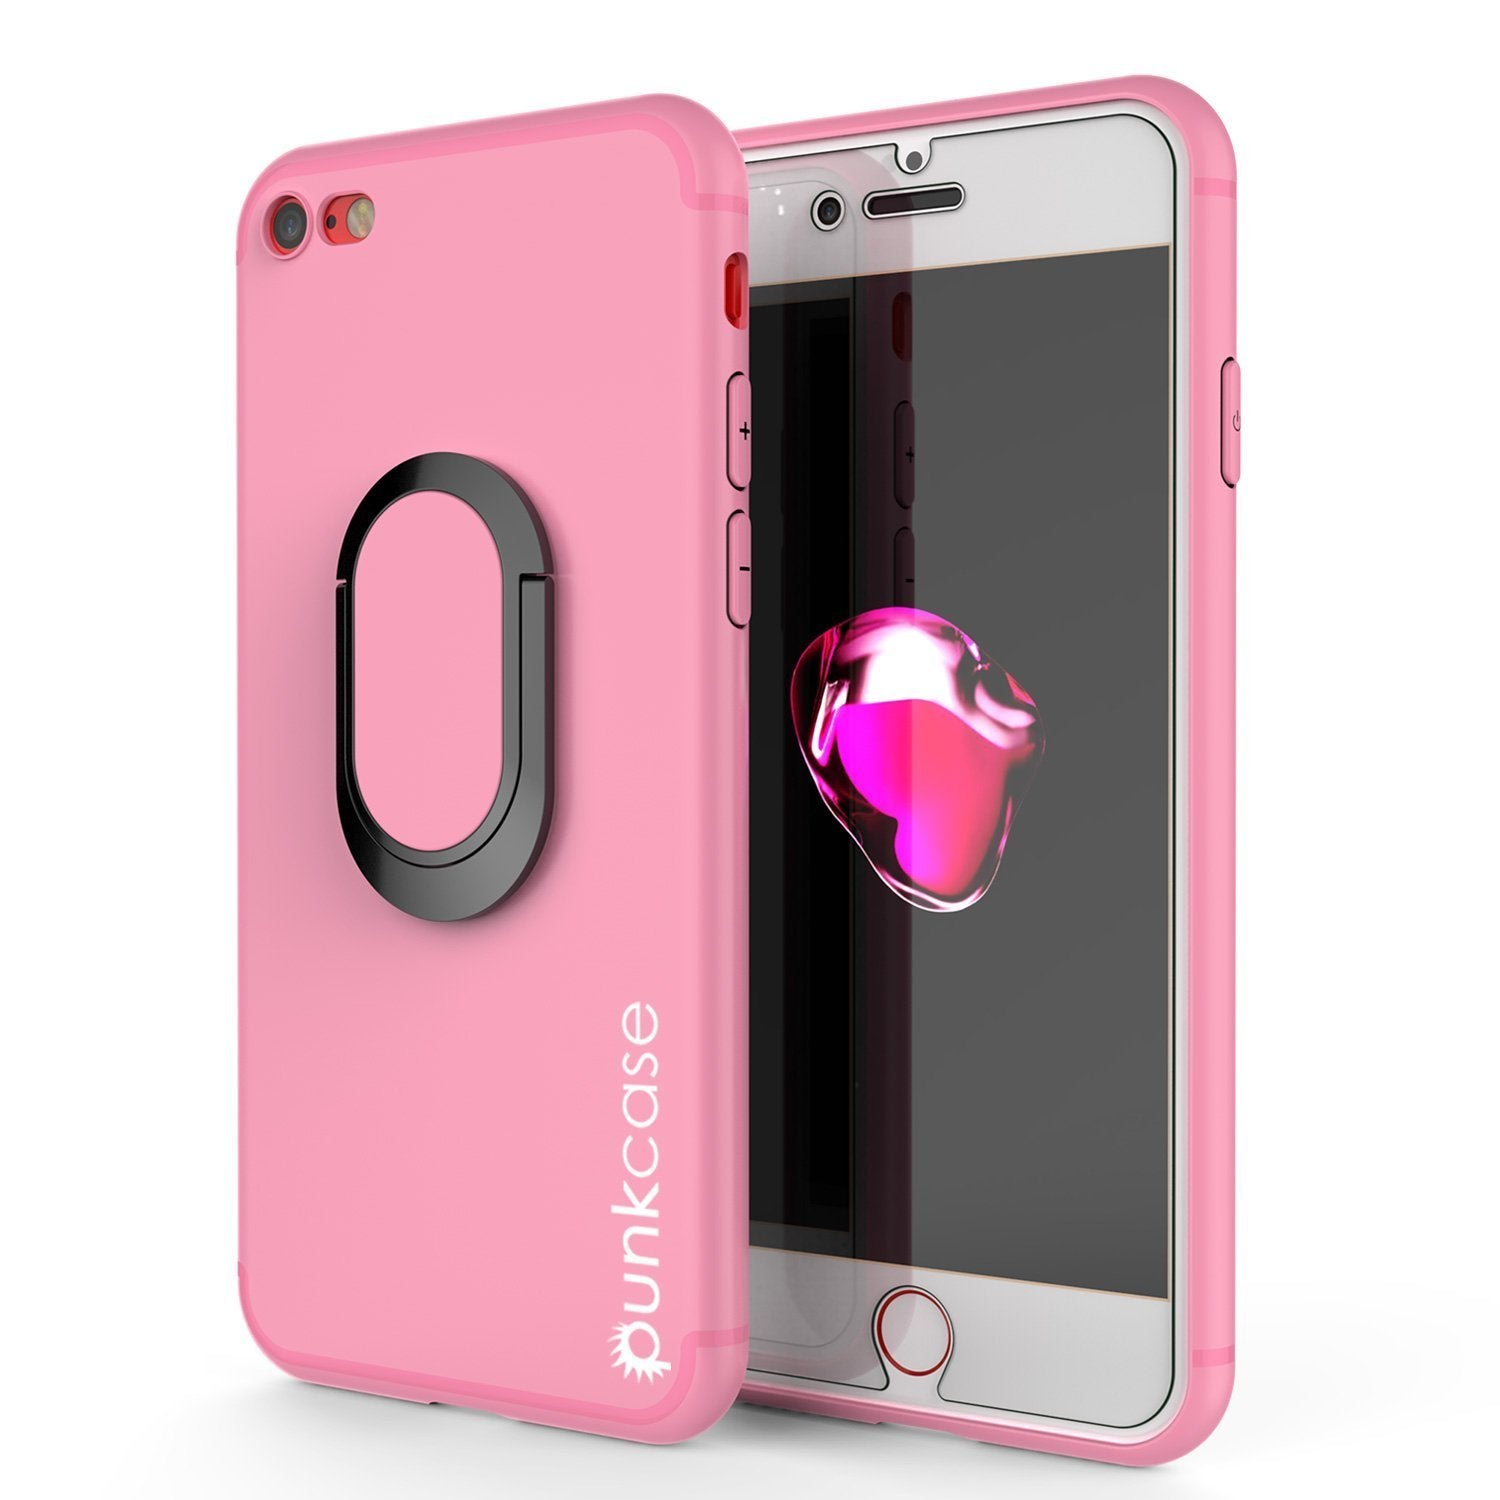 iPhone 8 Case, Punkcase Magnetix Protective TPU Cover W/ Kickstand, Tempered Glass Screen Protector [pink]